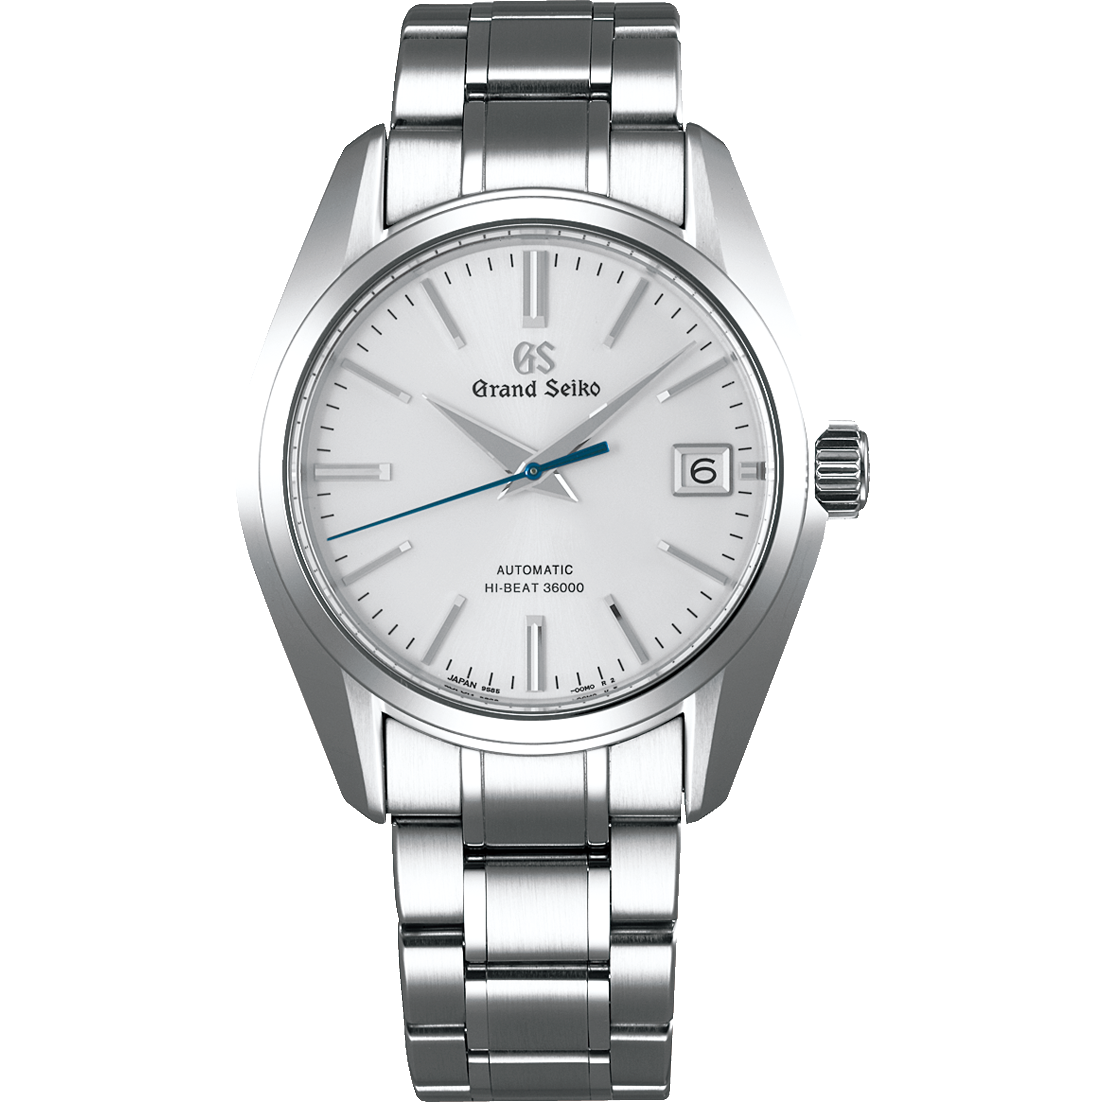 Grand Seiko Hi-Beat 36000 SBGH201